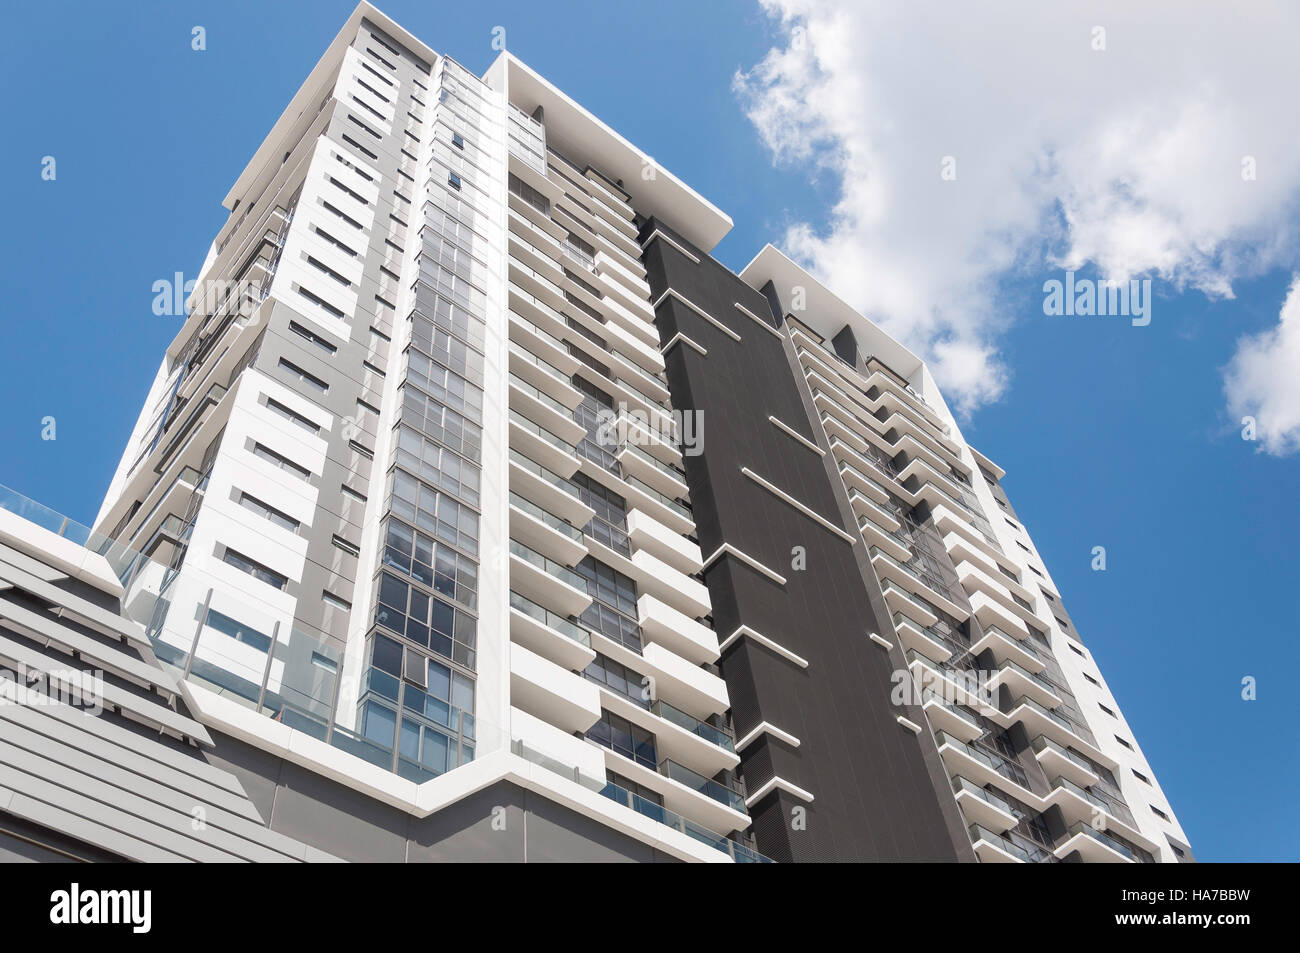 Modern apartment building overlooking Milton Railway Station, Milton, Brisbane, Queensland, Australia - Stock Image